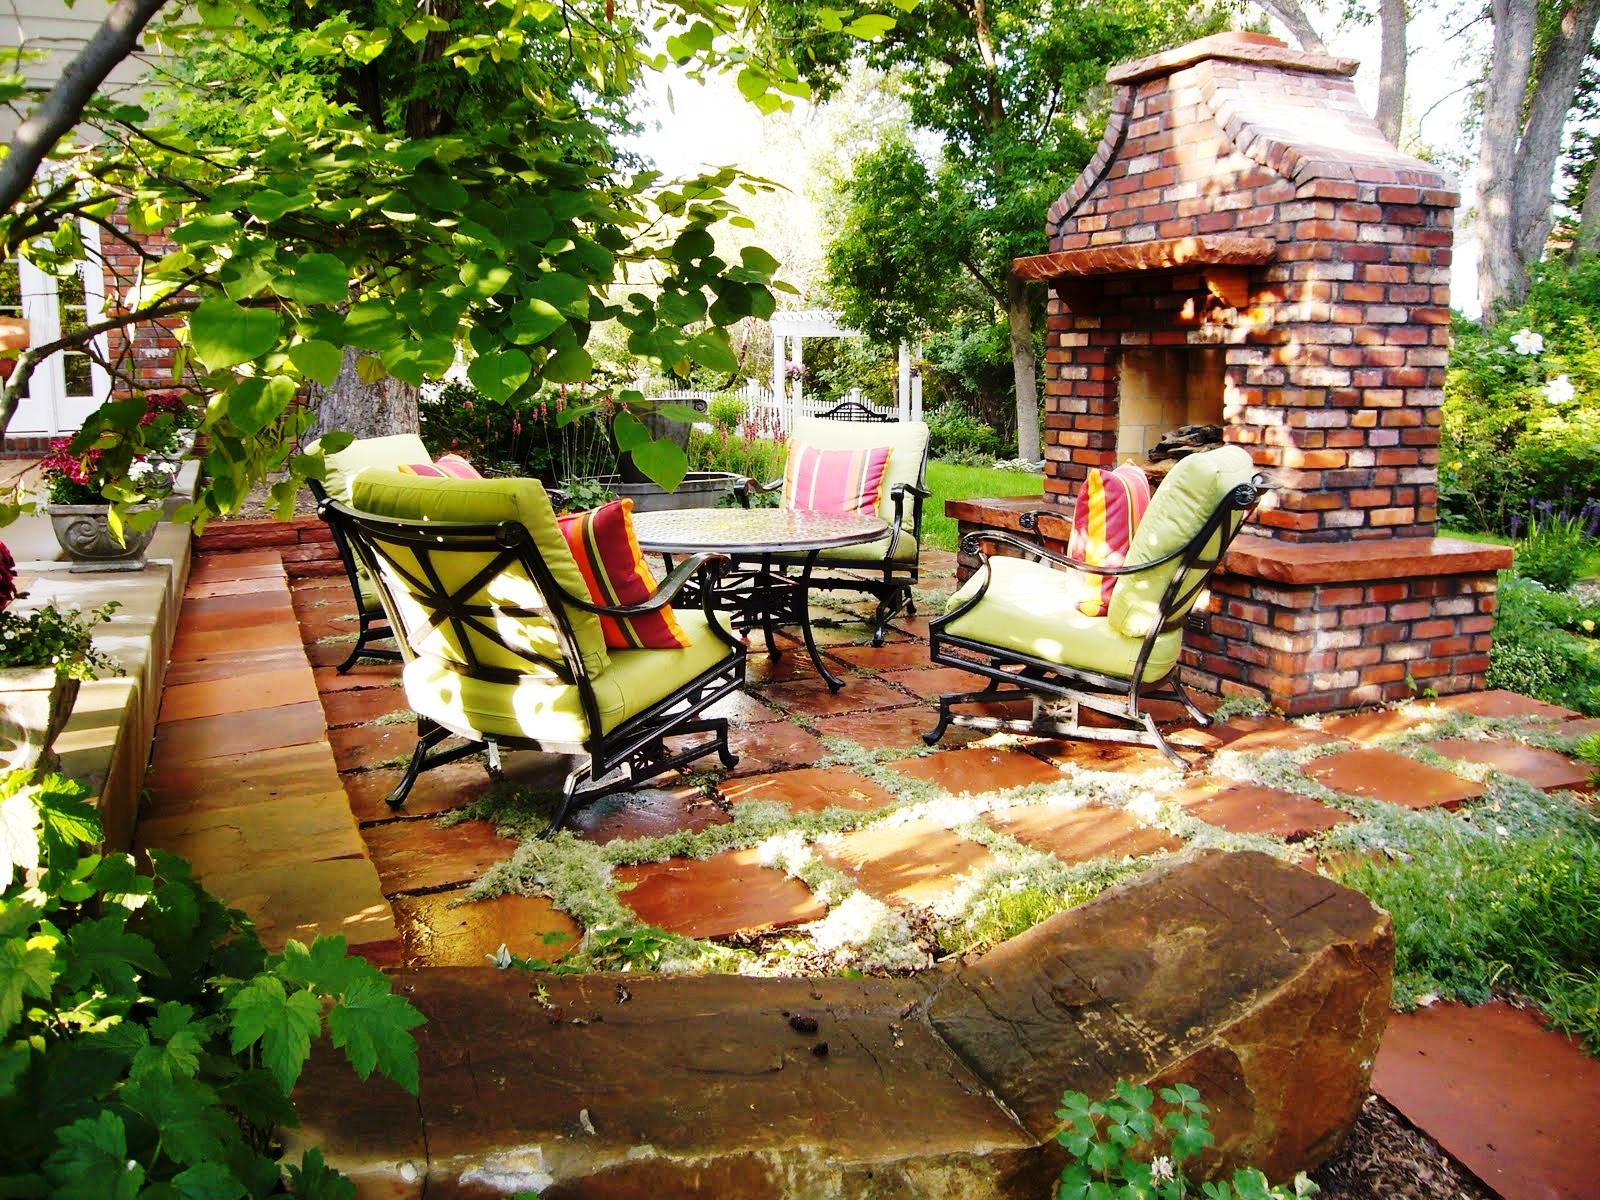 What You Need To Think Before Deciding The Backyard Patio ... on Outdoor Patio Design Ideas id=60701